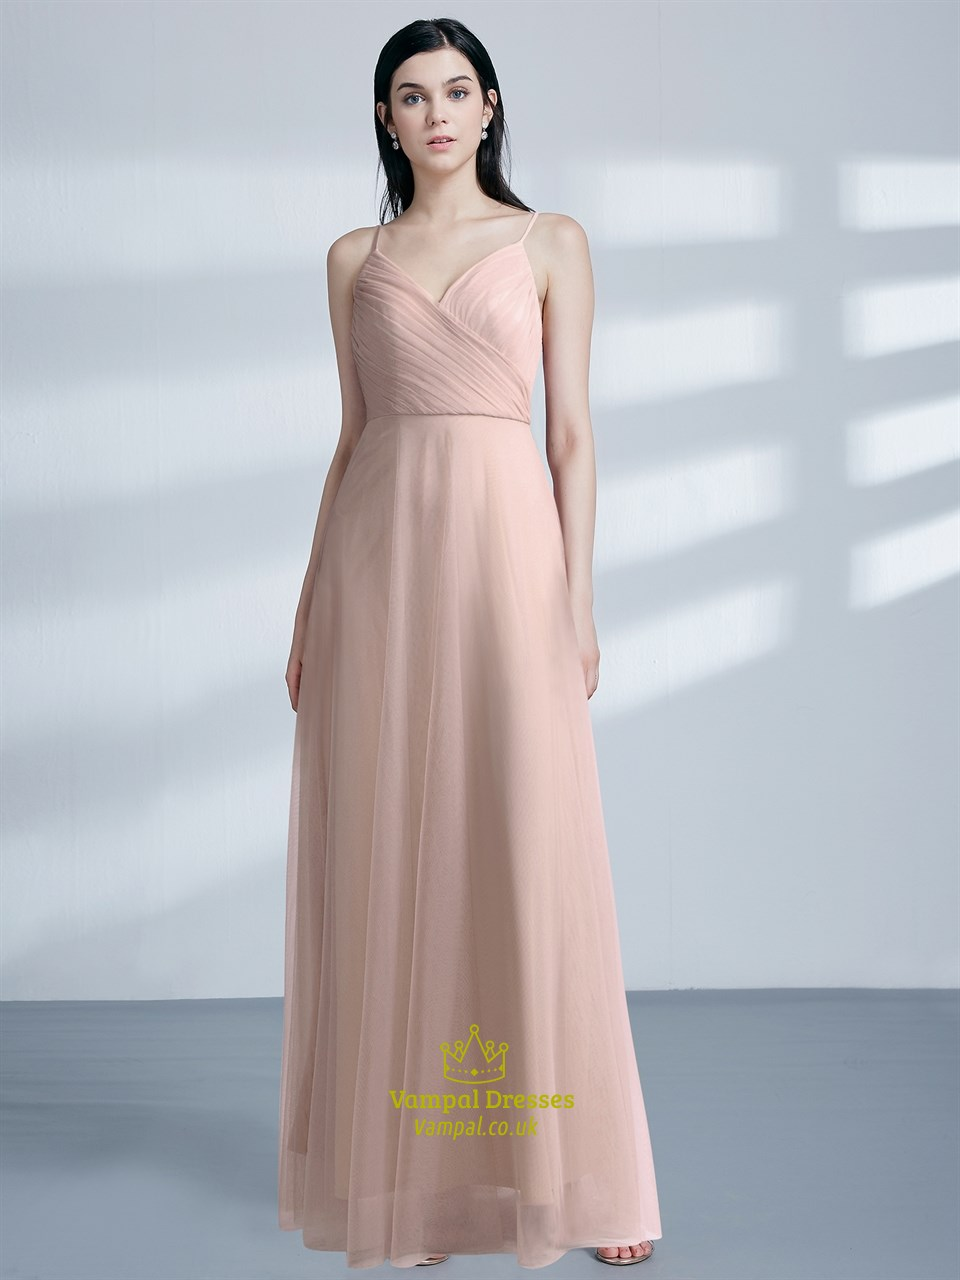 Blush Pink Sleeveless Ruched Bodice Floor Length Tulle